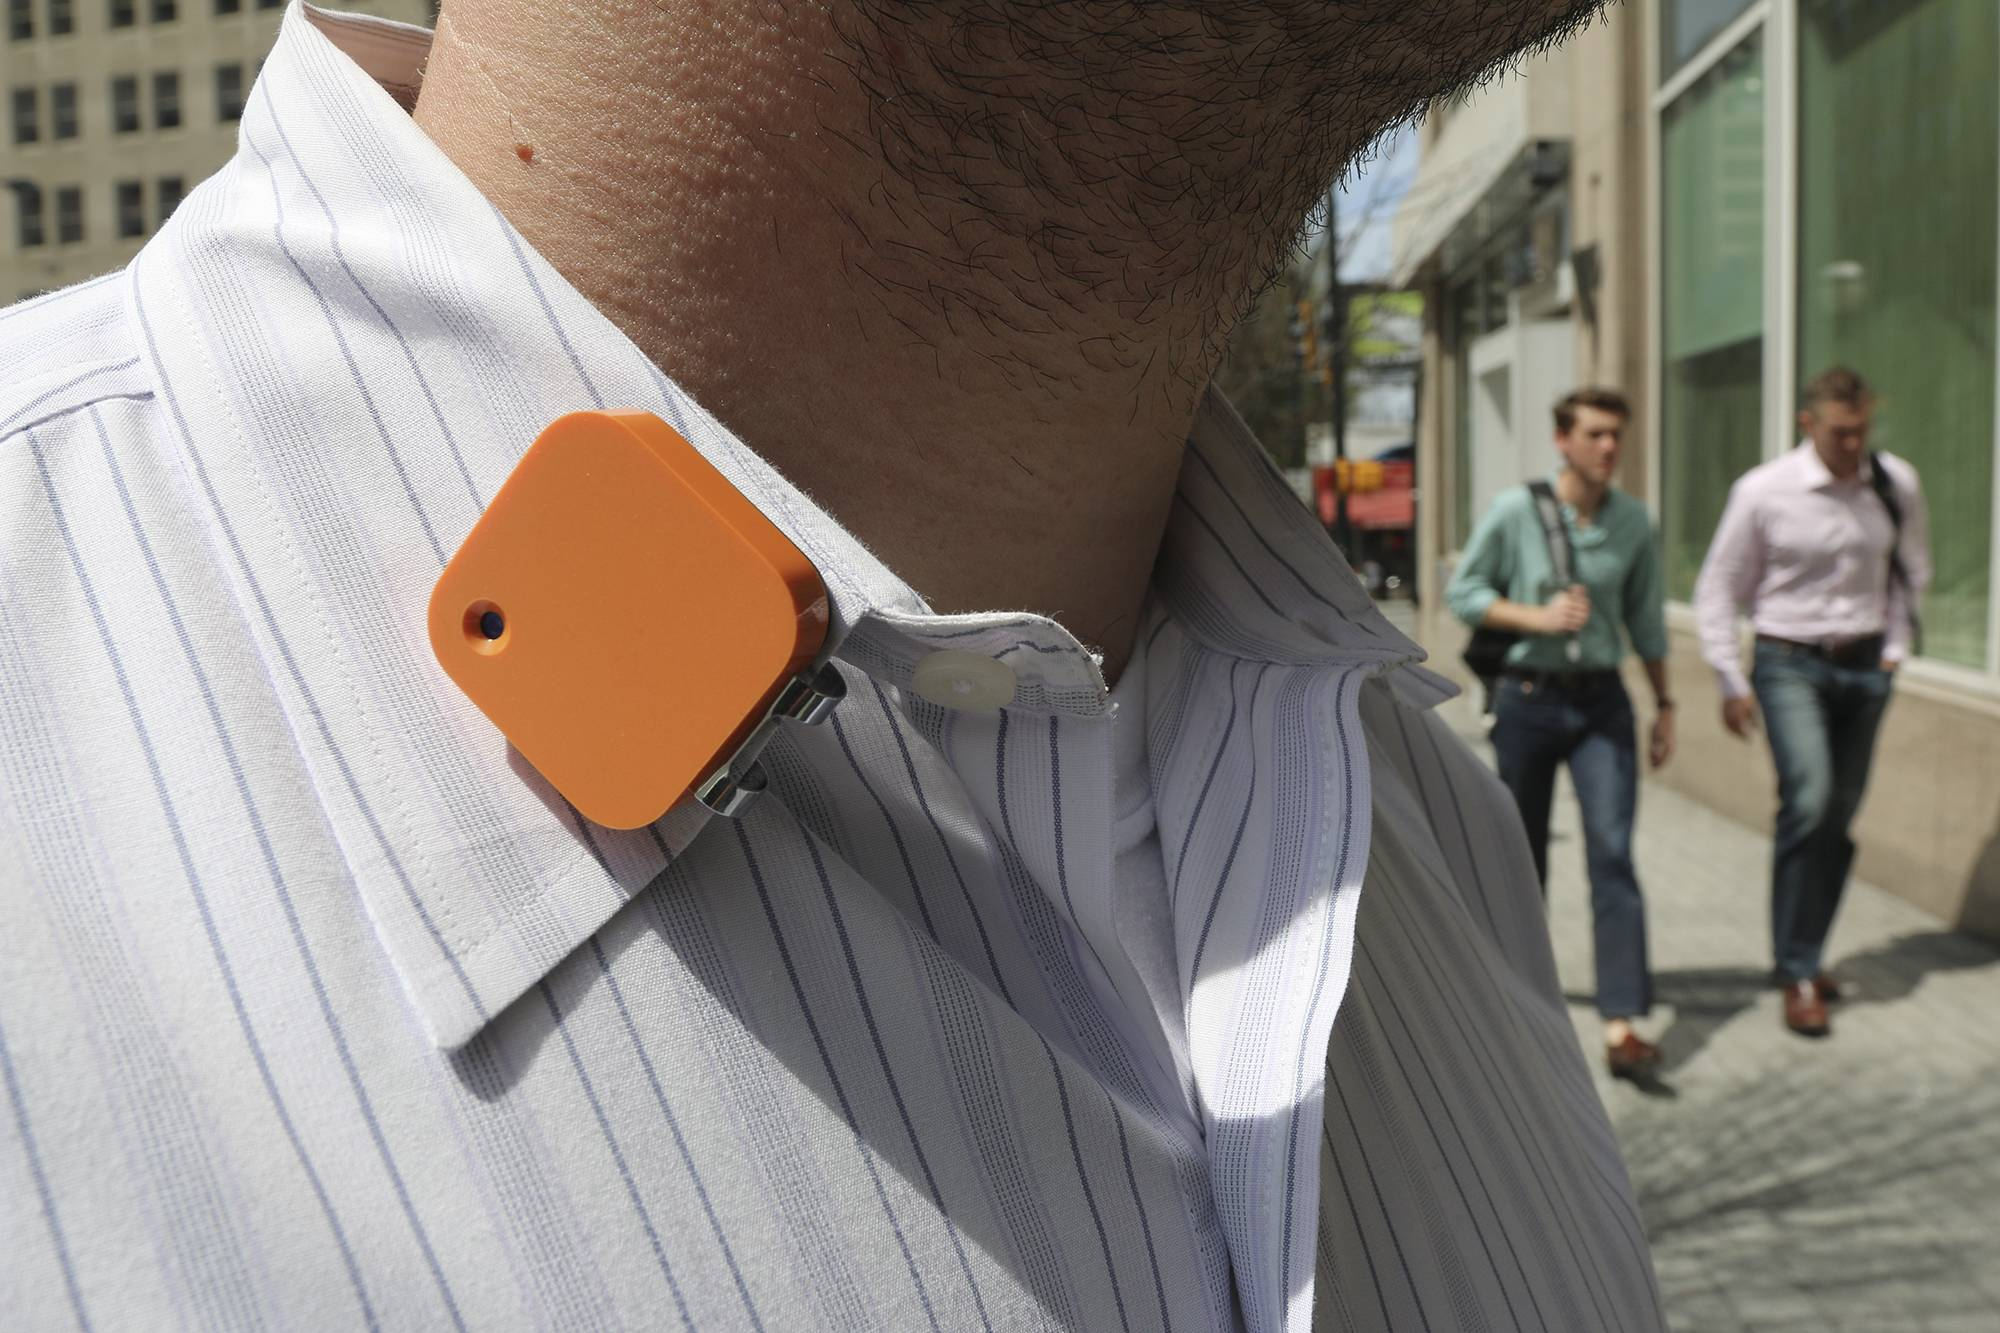 A Narrative Clip life-logging device is worn on a shirt collar Wednesday, April 2, 2014 in Atlanta. The small, wearable camera takes a photo automatically every 30 seconds.